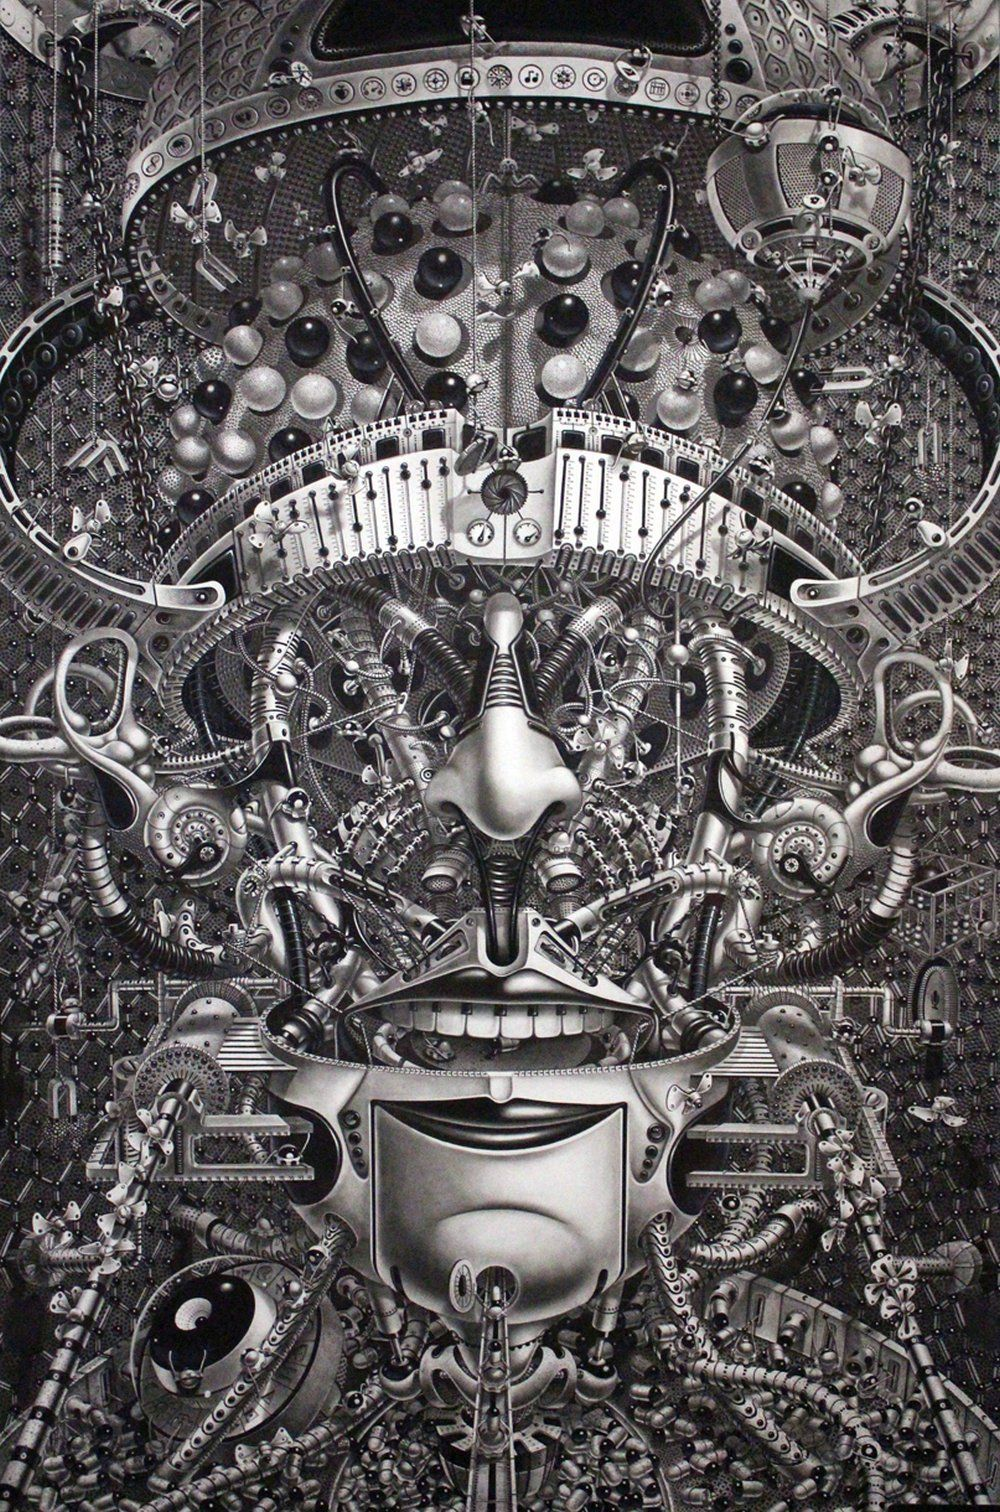 The Surreal Steampunk Drawings Of Samuel Gomez